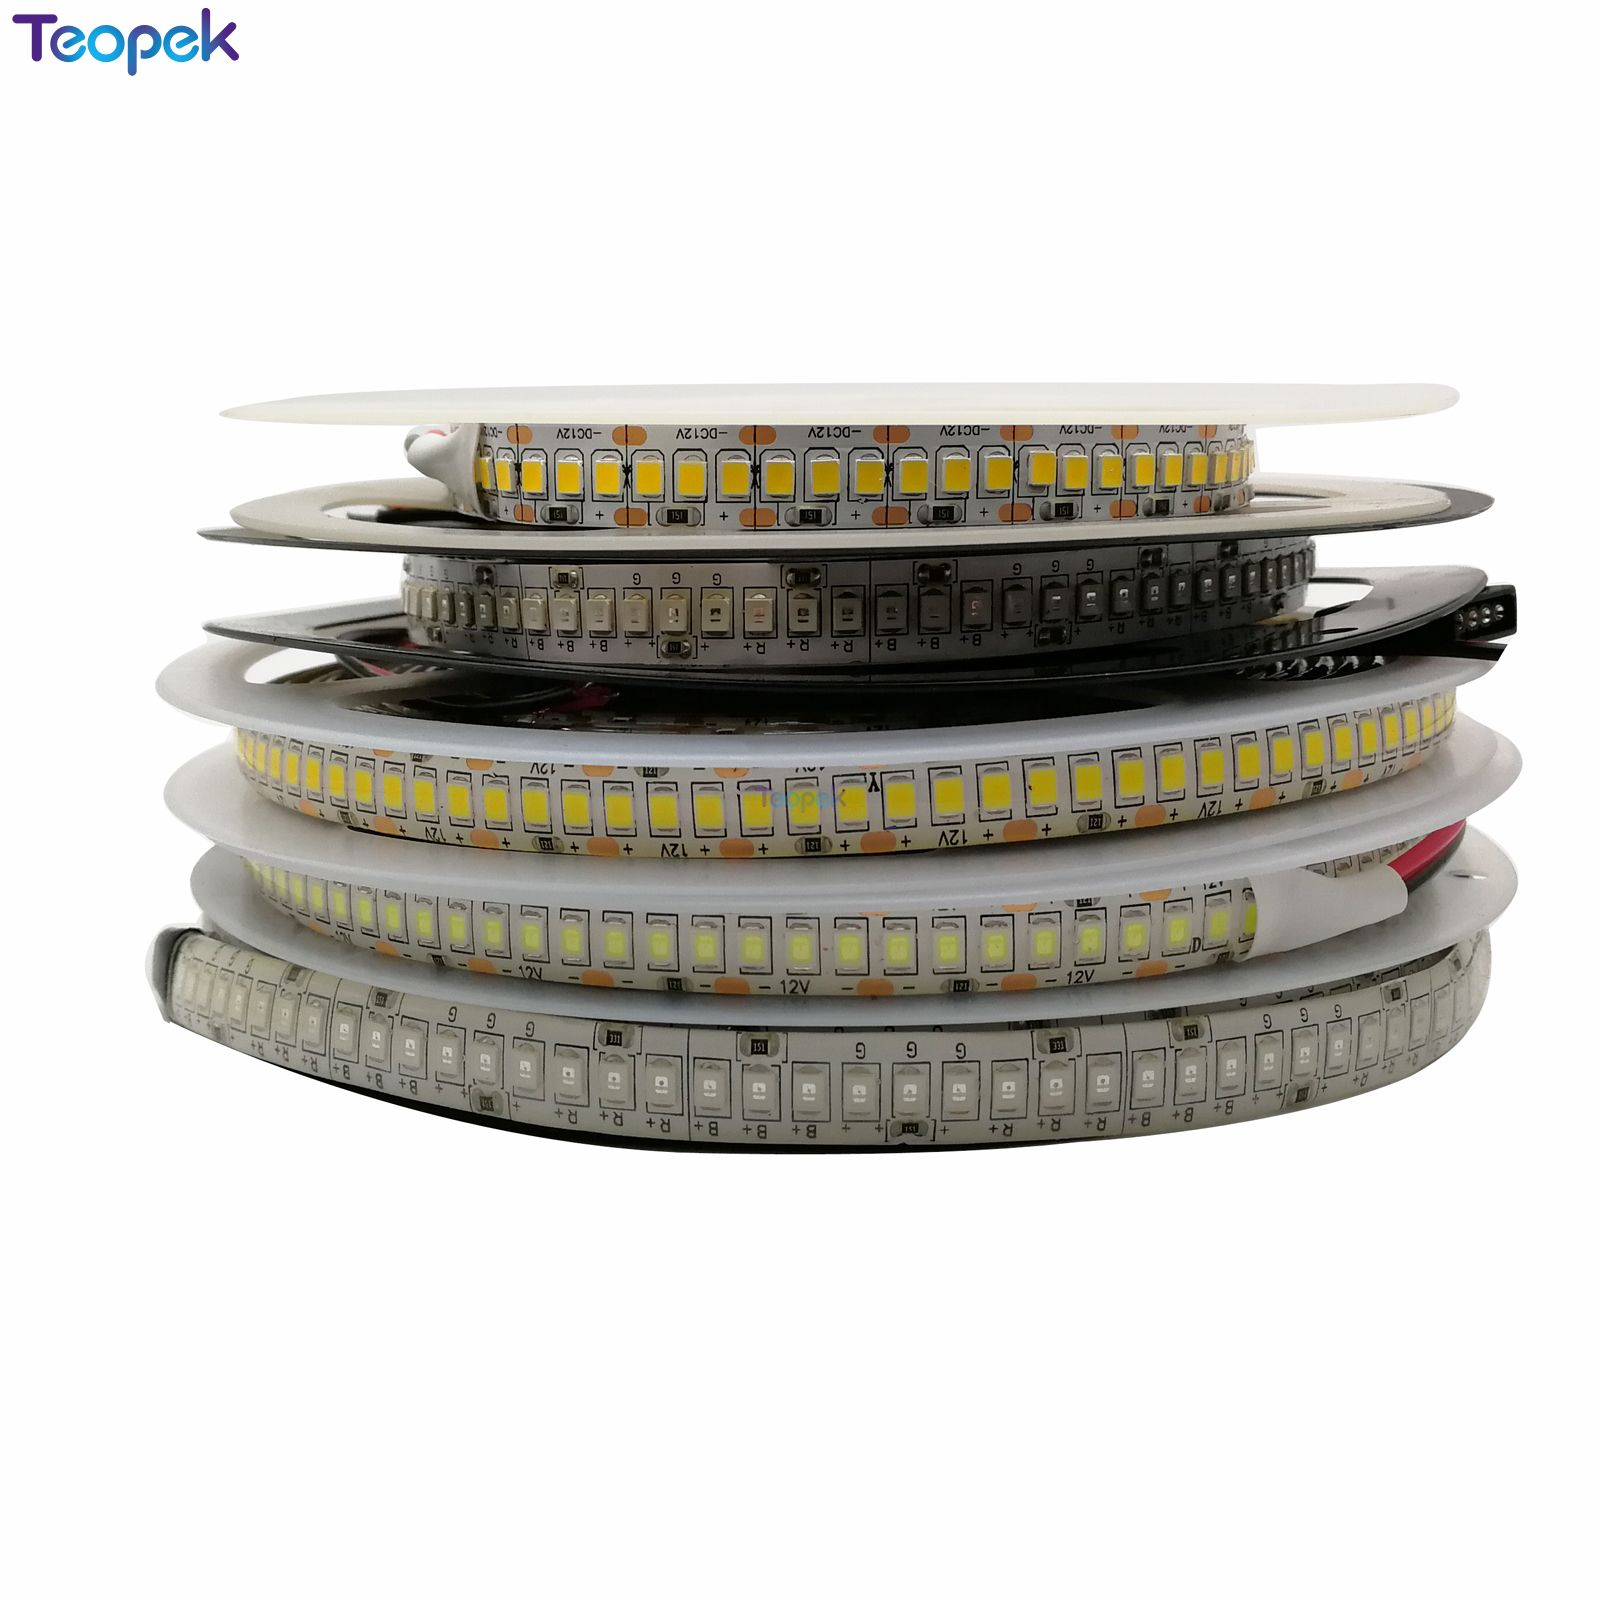 LED Strip 2835 240LEDs/m DC12V High Brightness Flexible LED Tape Light Natural White / Warm White / White /RGB 5m/lot